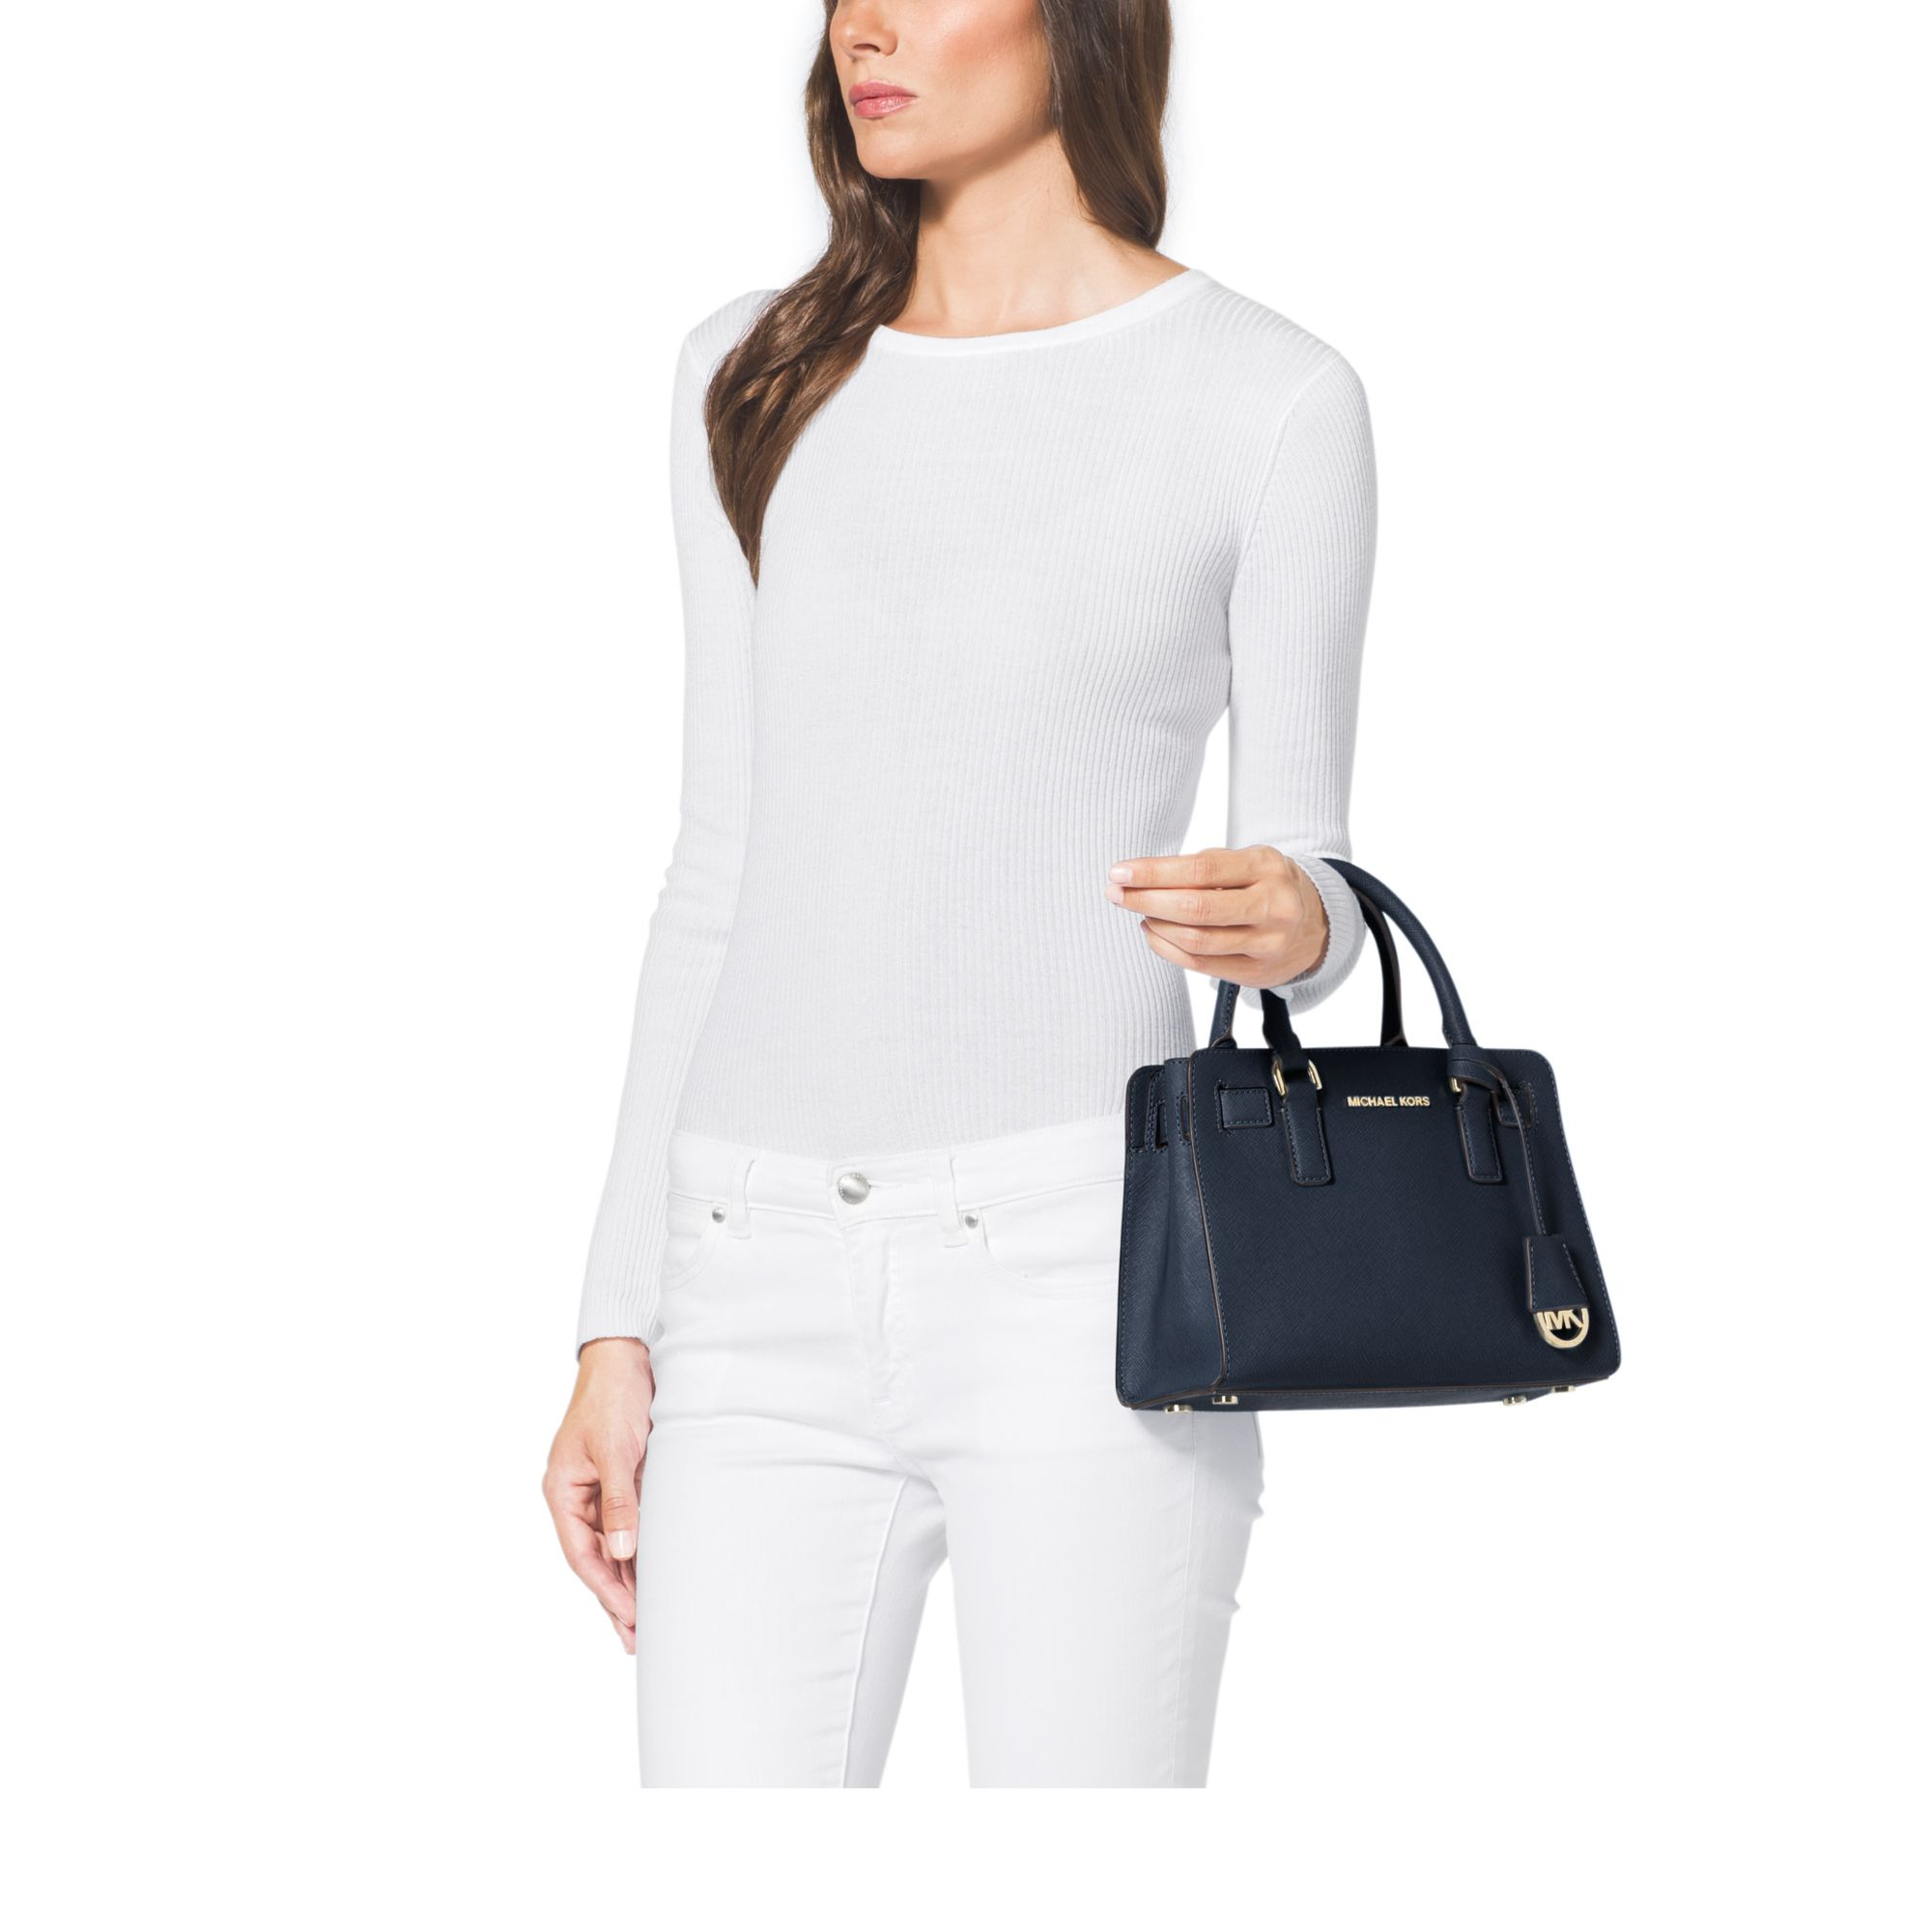 d79150278c39 Michael Kors Dillon Small Saffiano Leather Satchel in Blue - Lyst